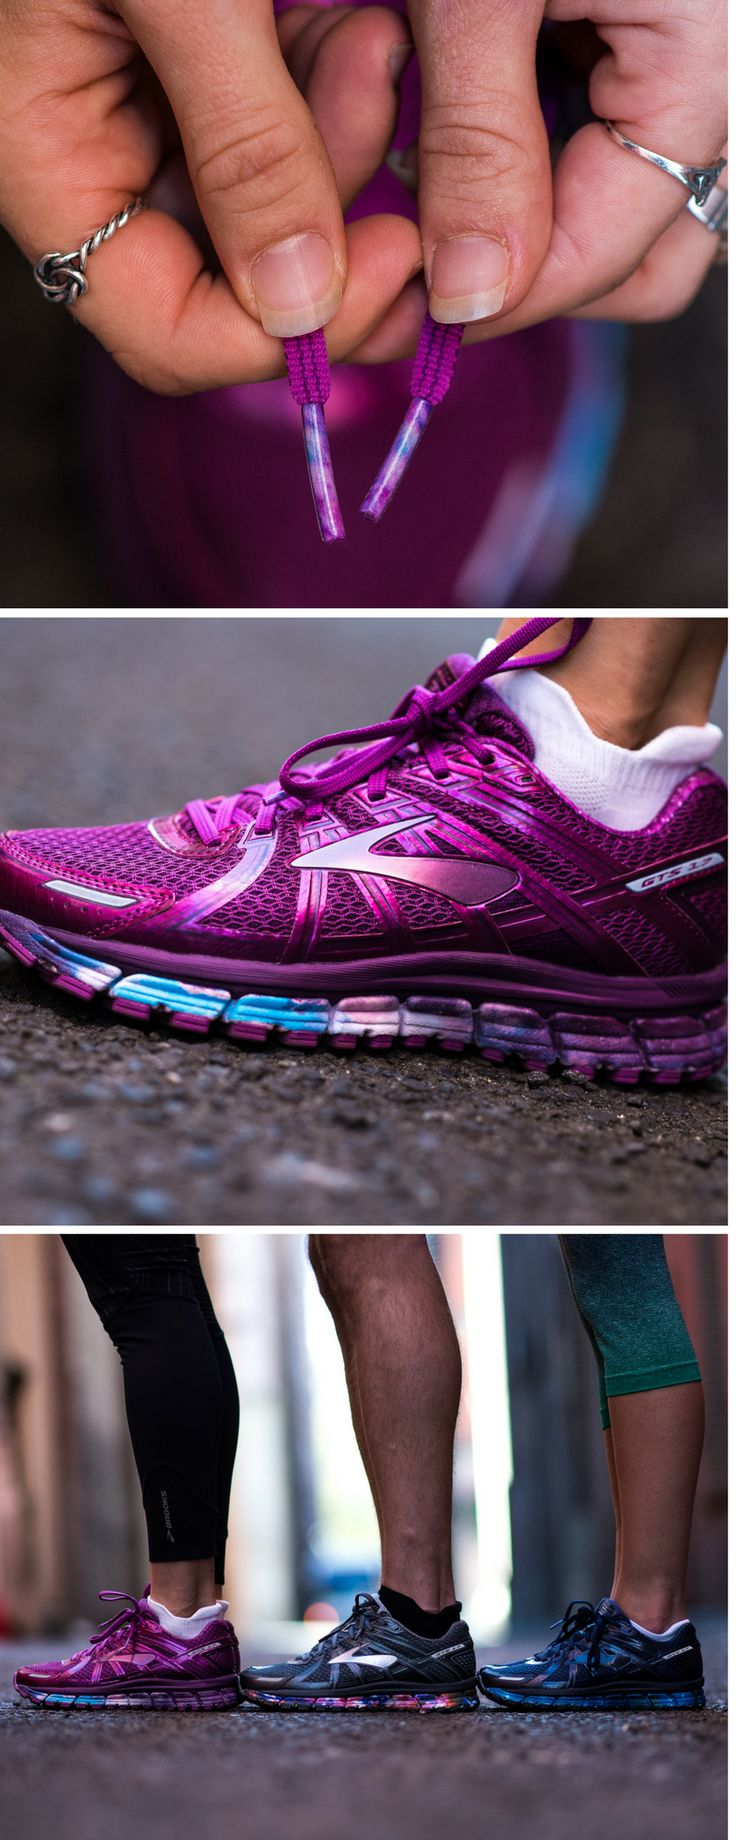 SOLD OUT |Light Up Your Run | The Galaxy Collection | Limited Edition Running Shoes From Brooks